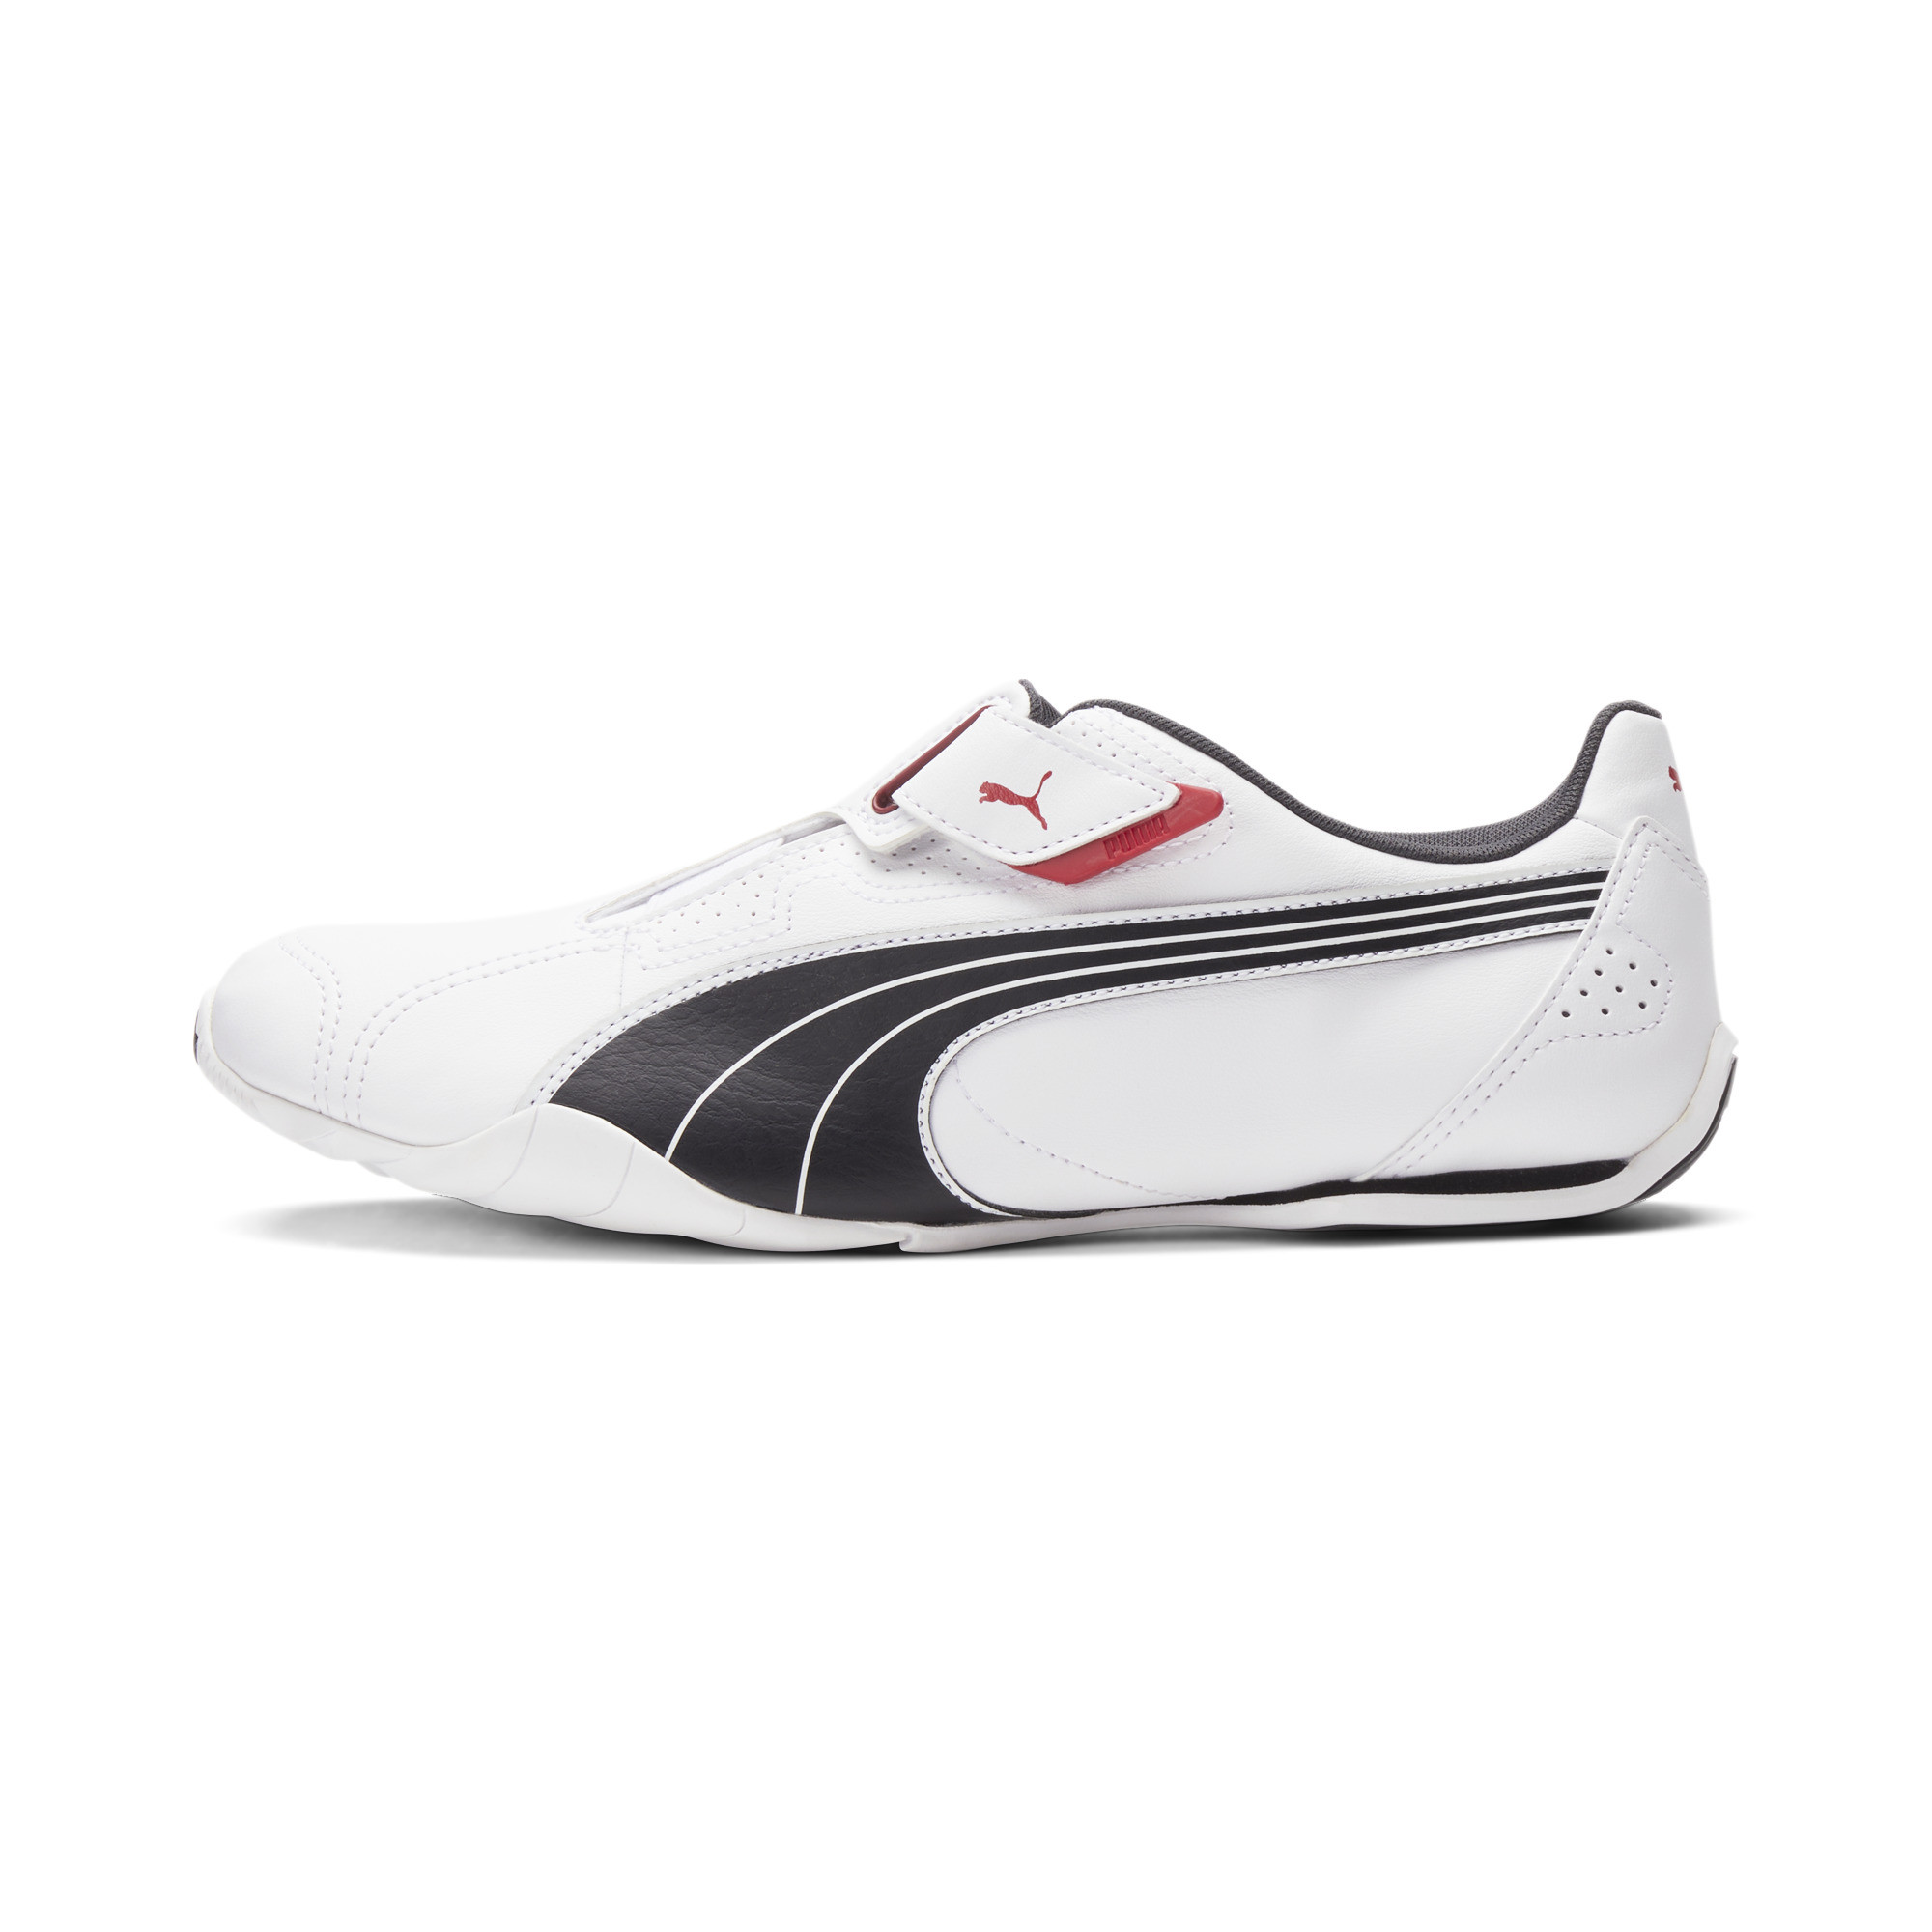 PUMA-Redon-Move-Men-039-s-Shoes-Men-Shoe-Sport-Shoe thumbnail 10